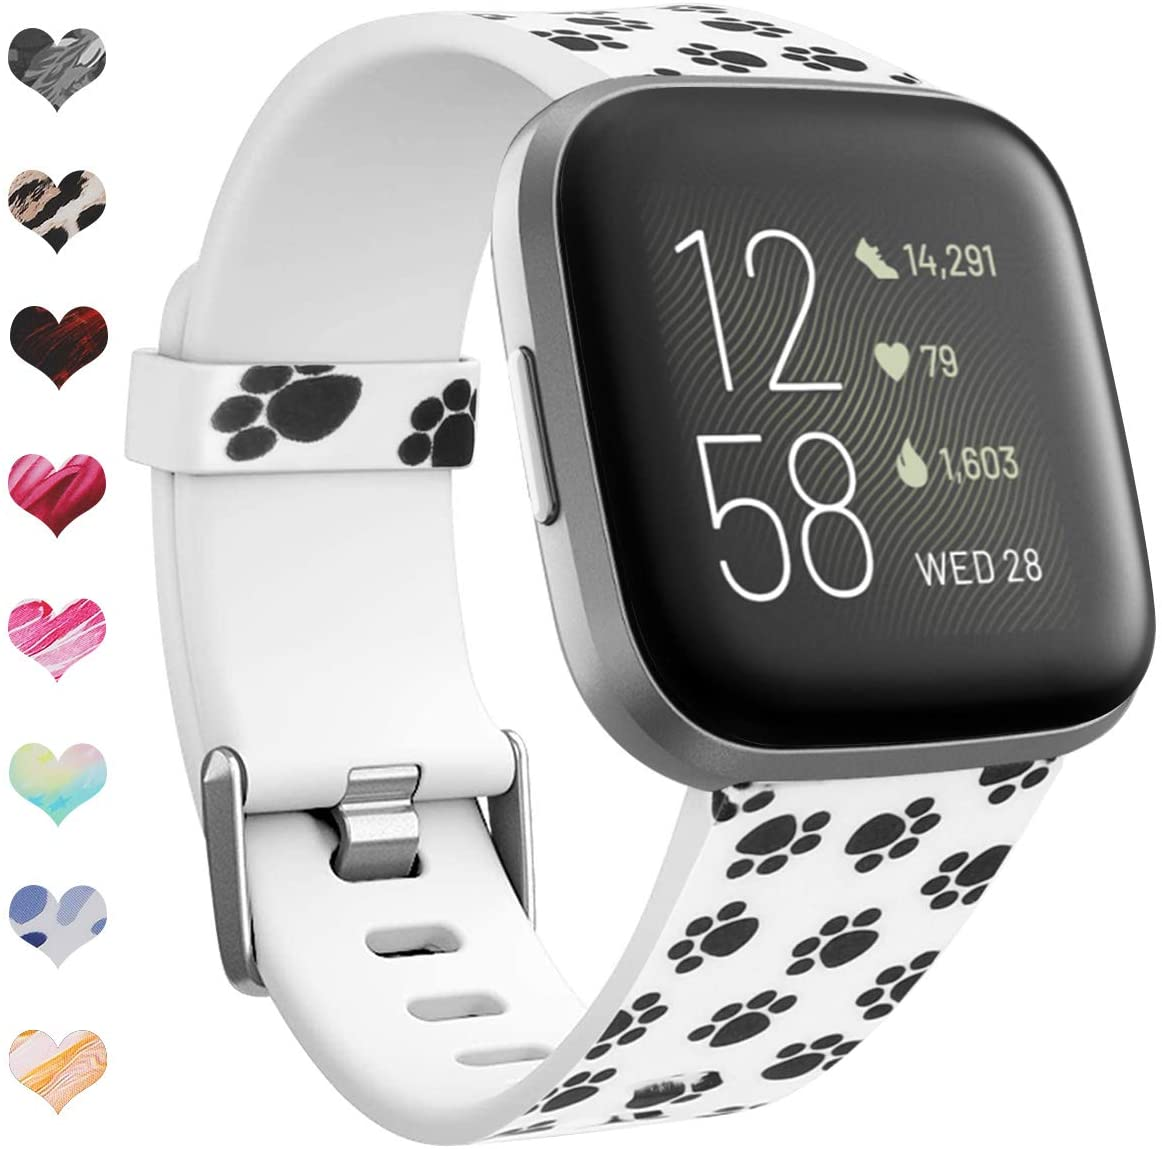 Floral Bands Compatible with Fitbit Versa 2 / Versa/Versa Lite Edition Sport Bands Soft Silicone Floral Fadeless Pattern Printed Strap Replacement Wristband for Women Men 6661023 (#4,Size Large)